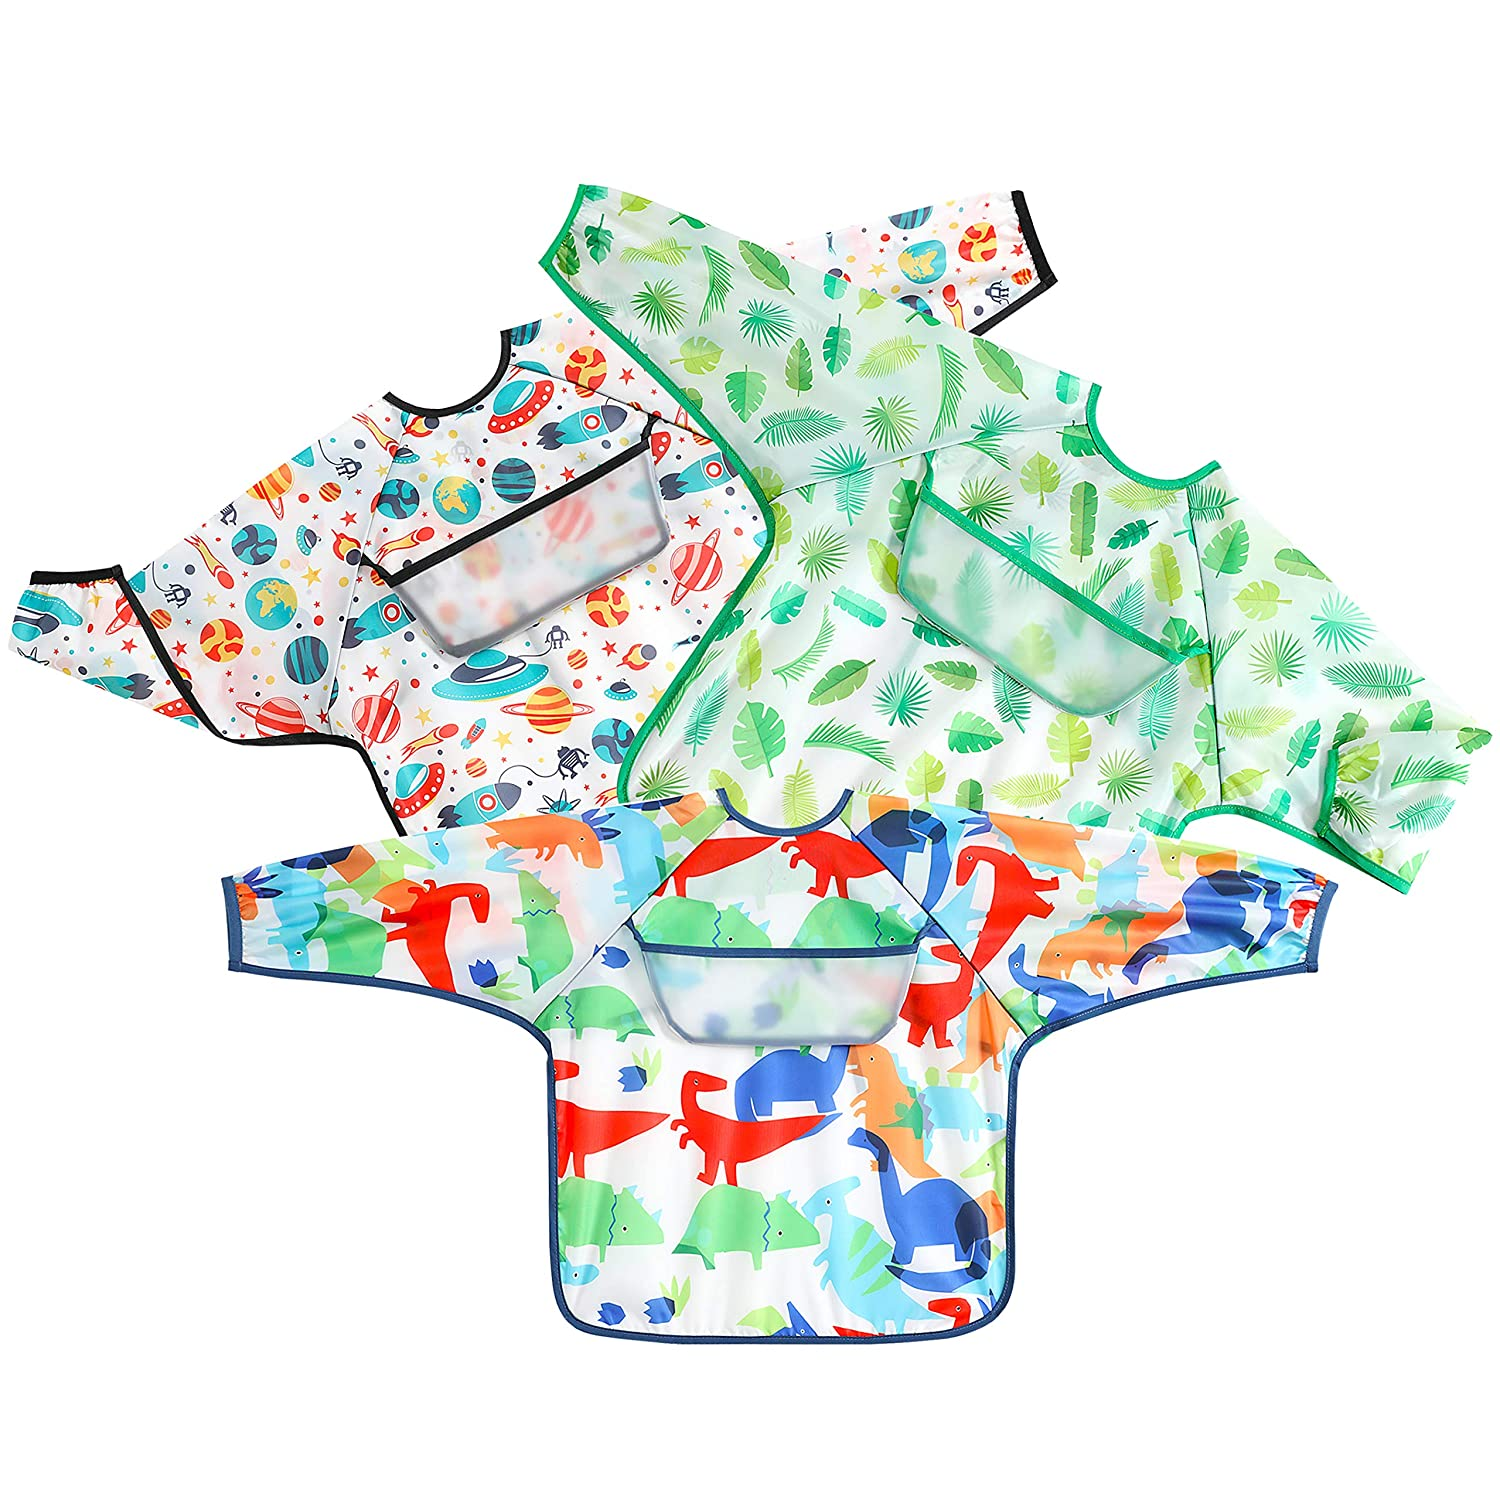 PandaEar Open Pocket Long Sleeve Bib 3-Pack Set| Baby & Toddler Waterproof Bibs Smock with Pocket and Crumb Catcher |Washable Stain and Odor Resistant Apron | 6-30 Months (Varied)